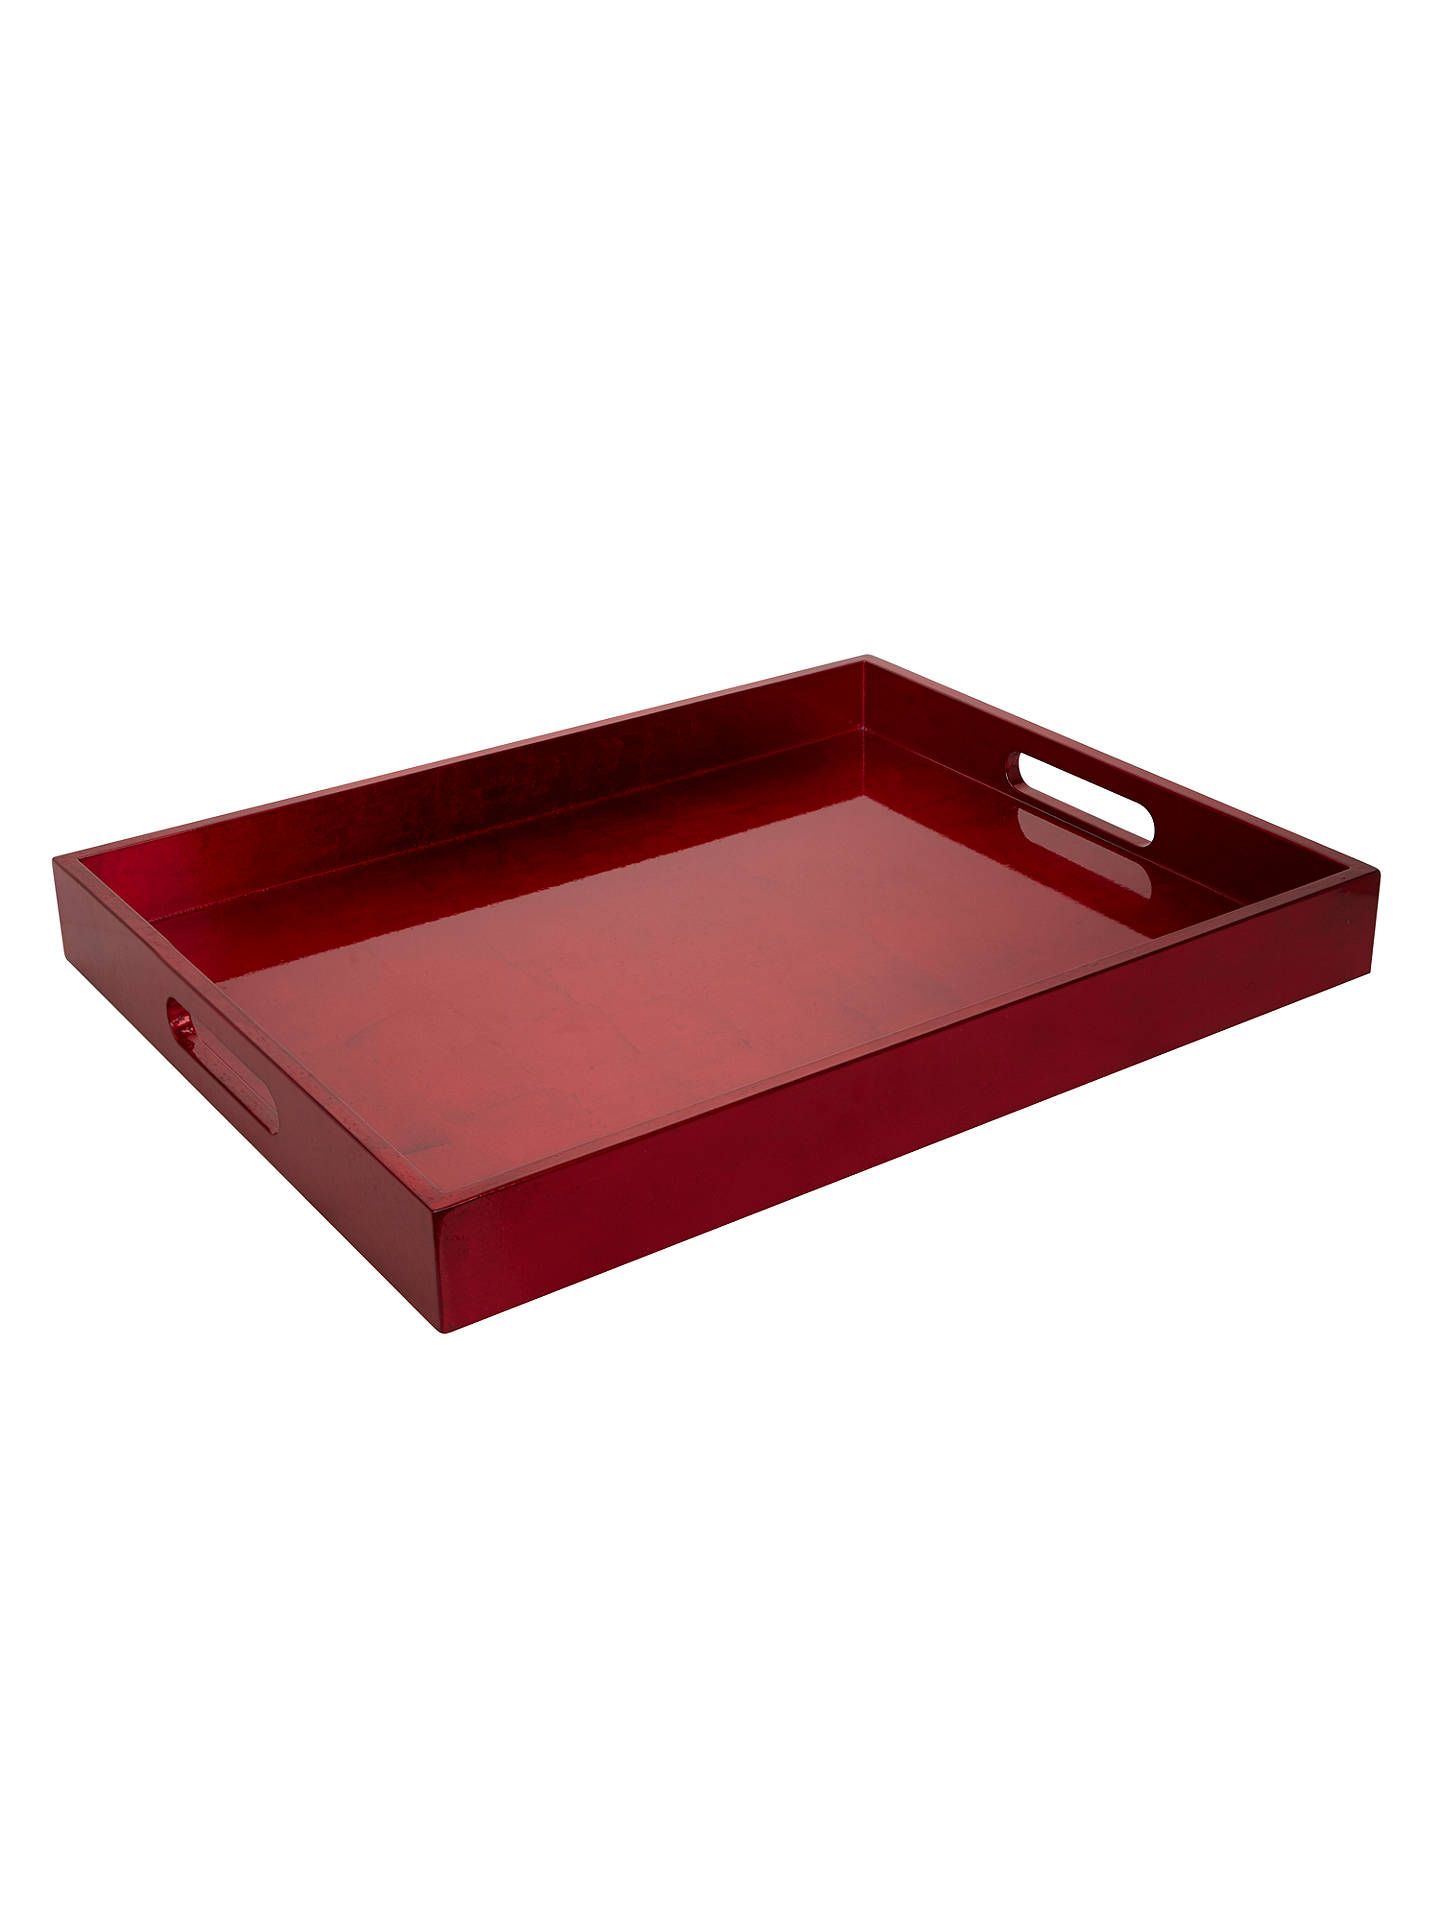 BuyJohn Lewis & Partners Rectangular Lacquer Tray, Red Online at johnlewis.com